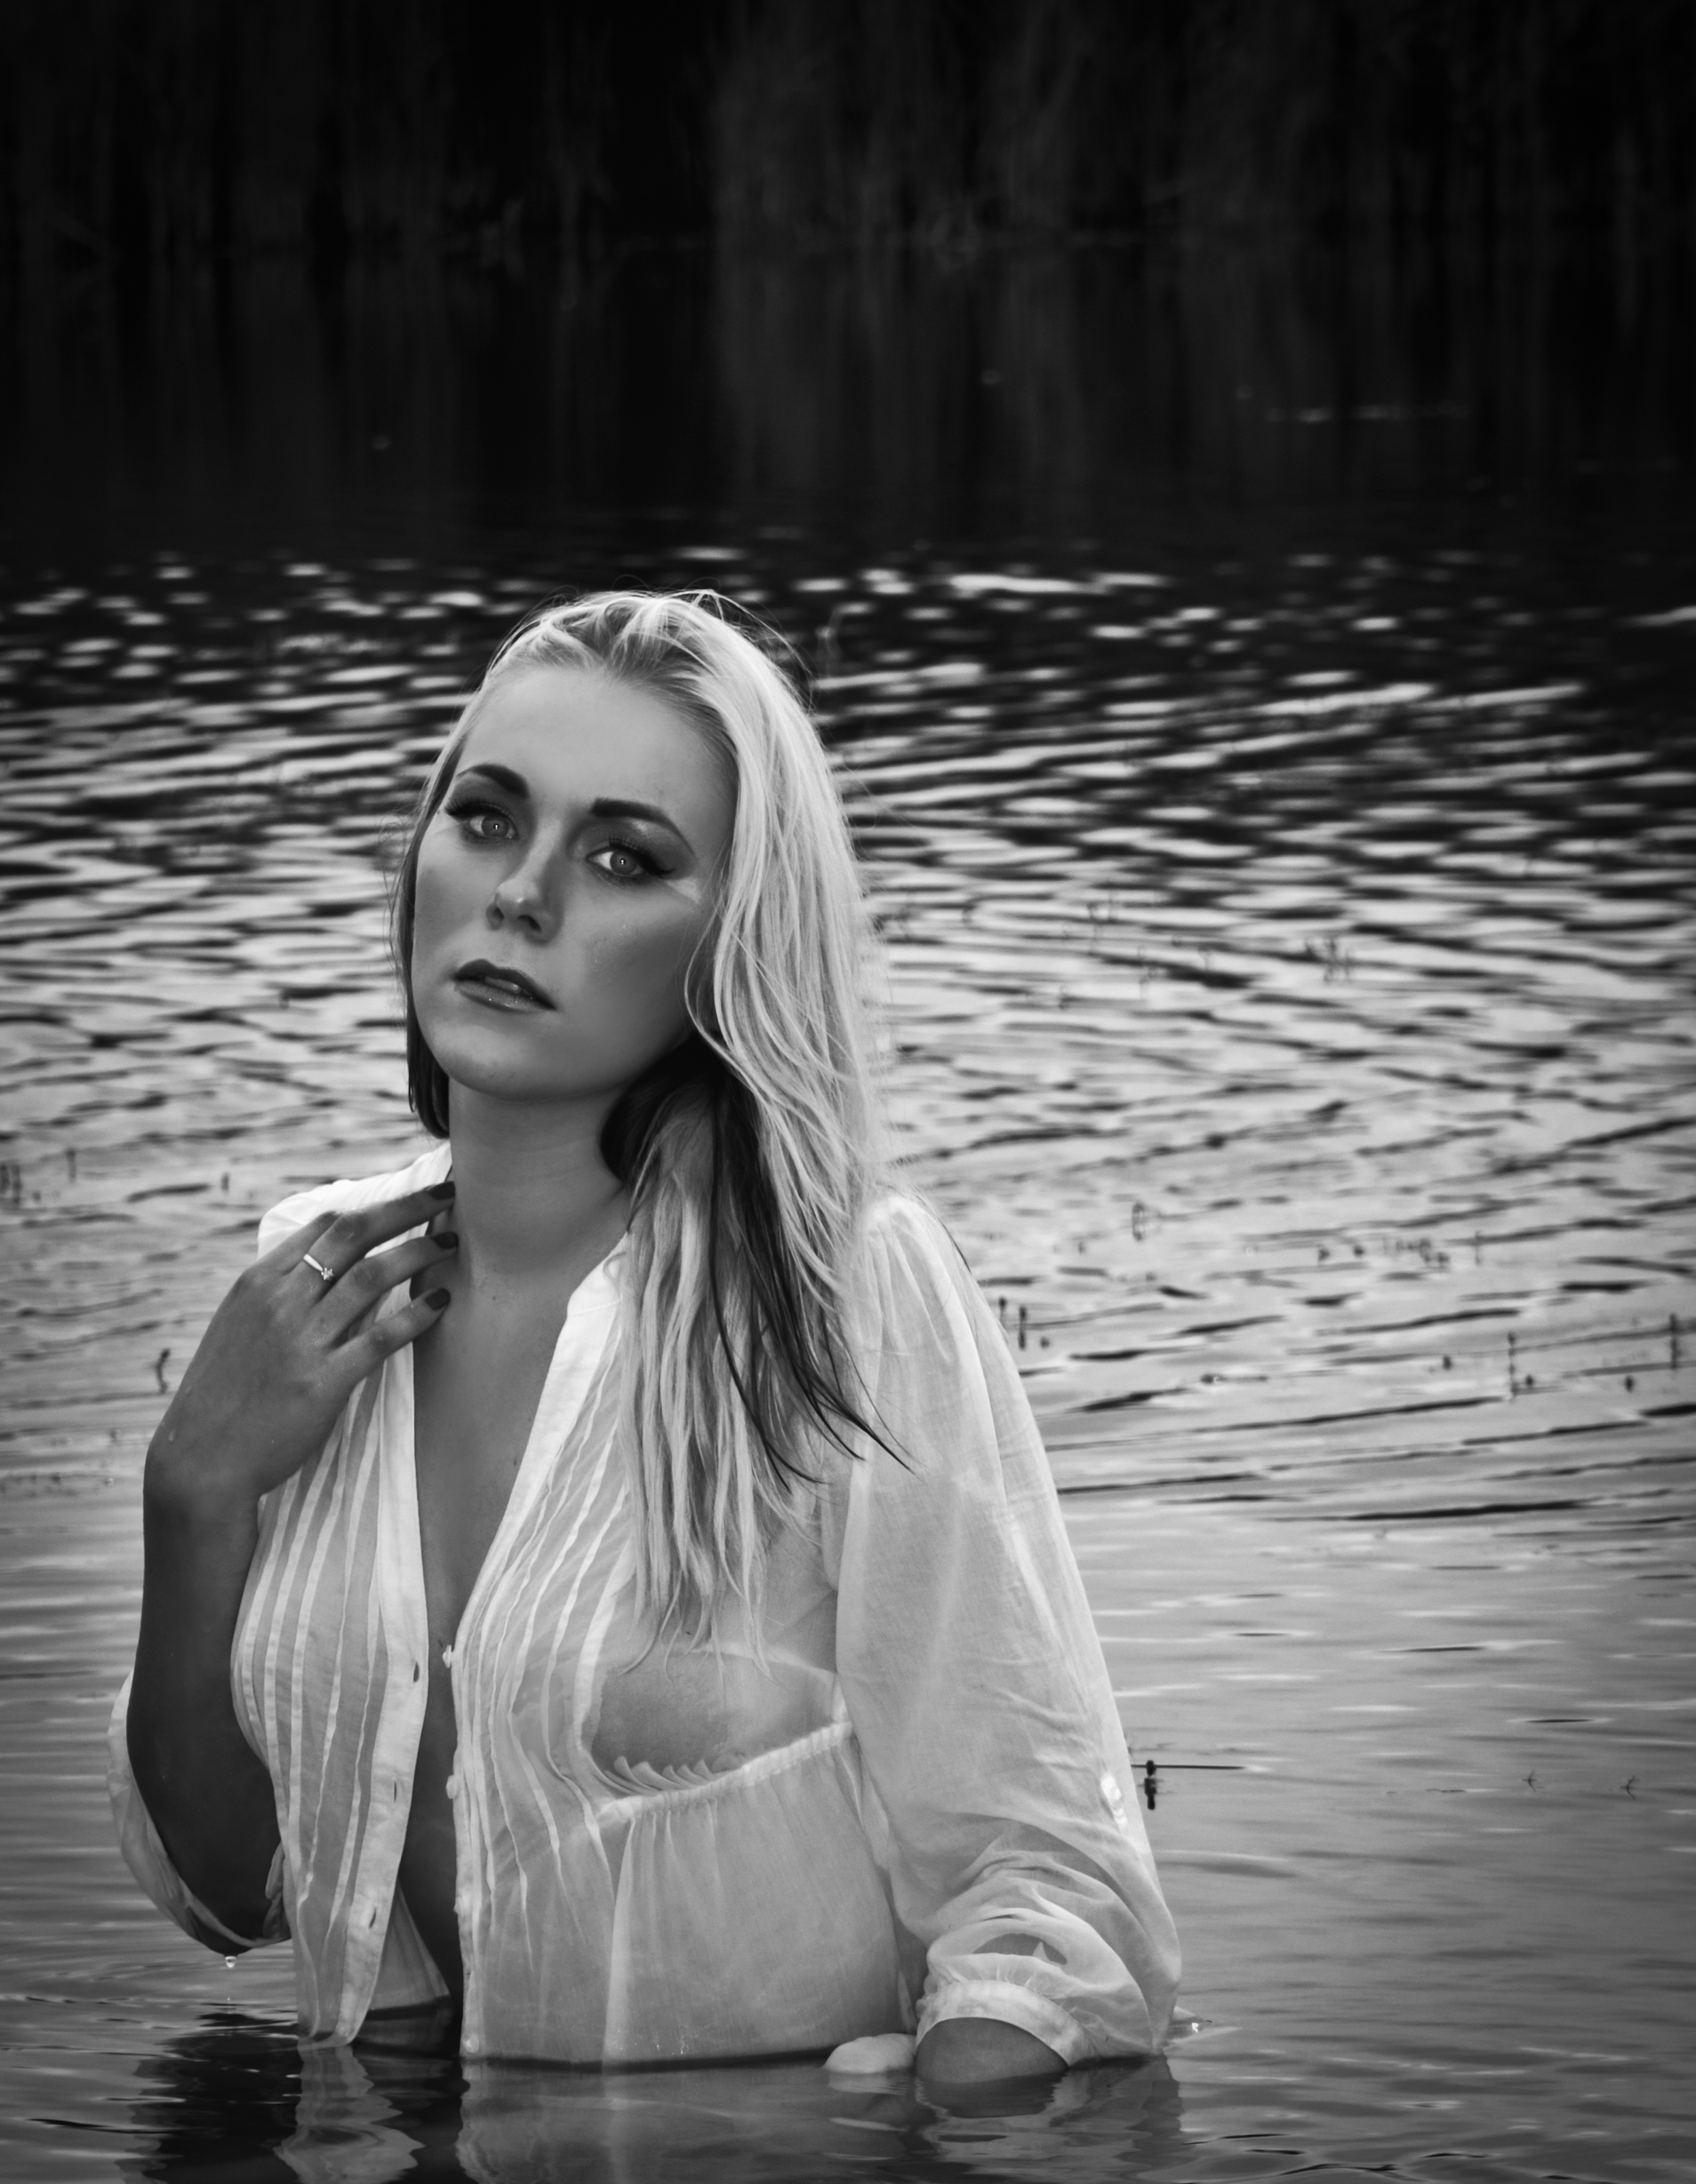 Lady in the water by Trinski